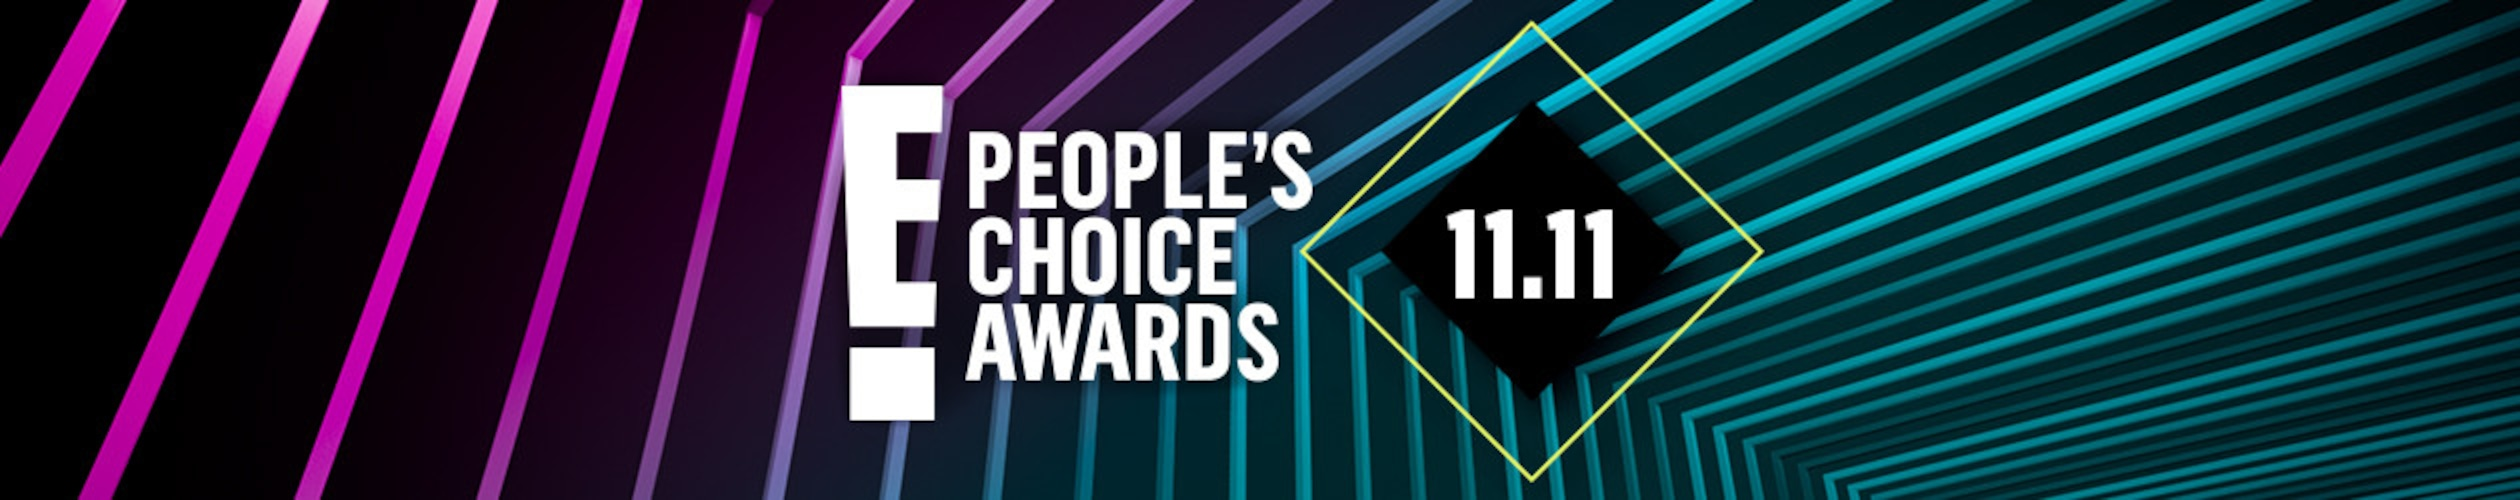 People's Choice Awards Tune-In Banner